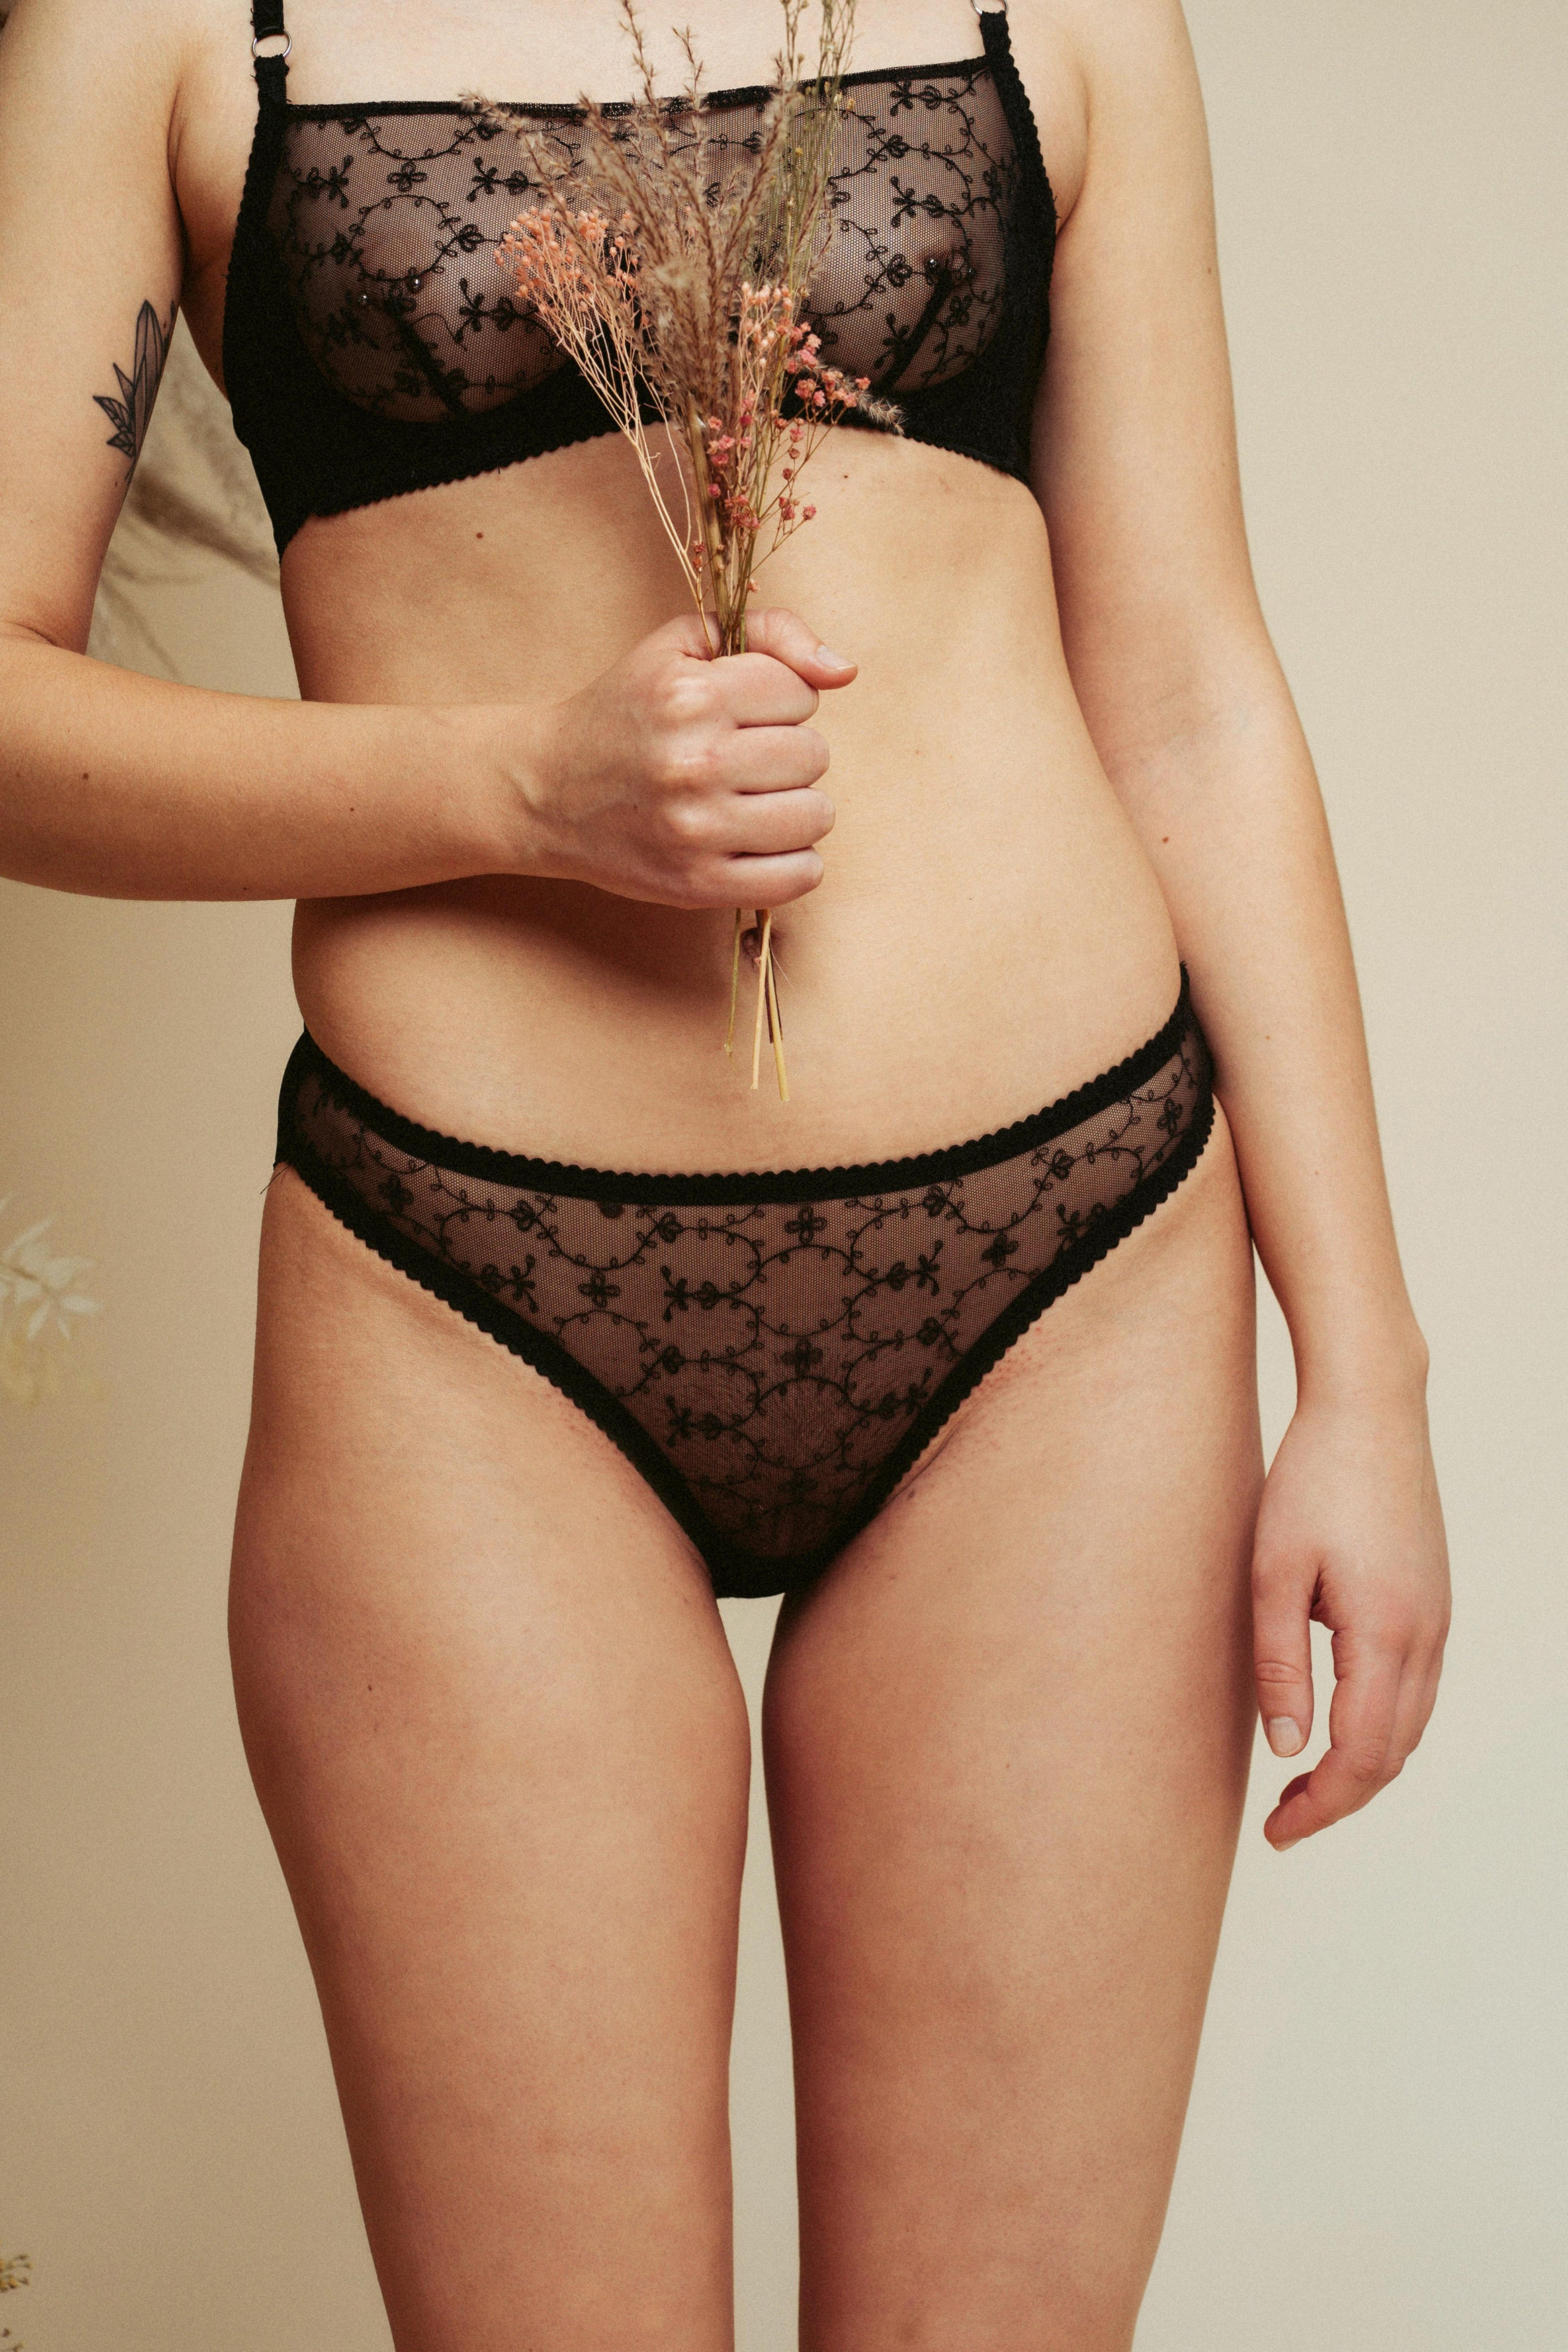 Model holding some dried flowers and wearing the Kauf High Leg Knicker and Bandeaux Wire Bra in black